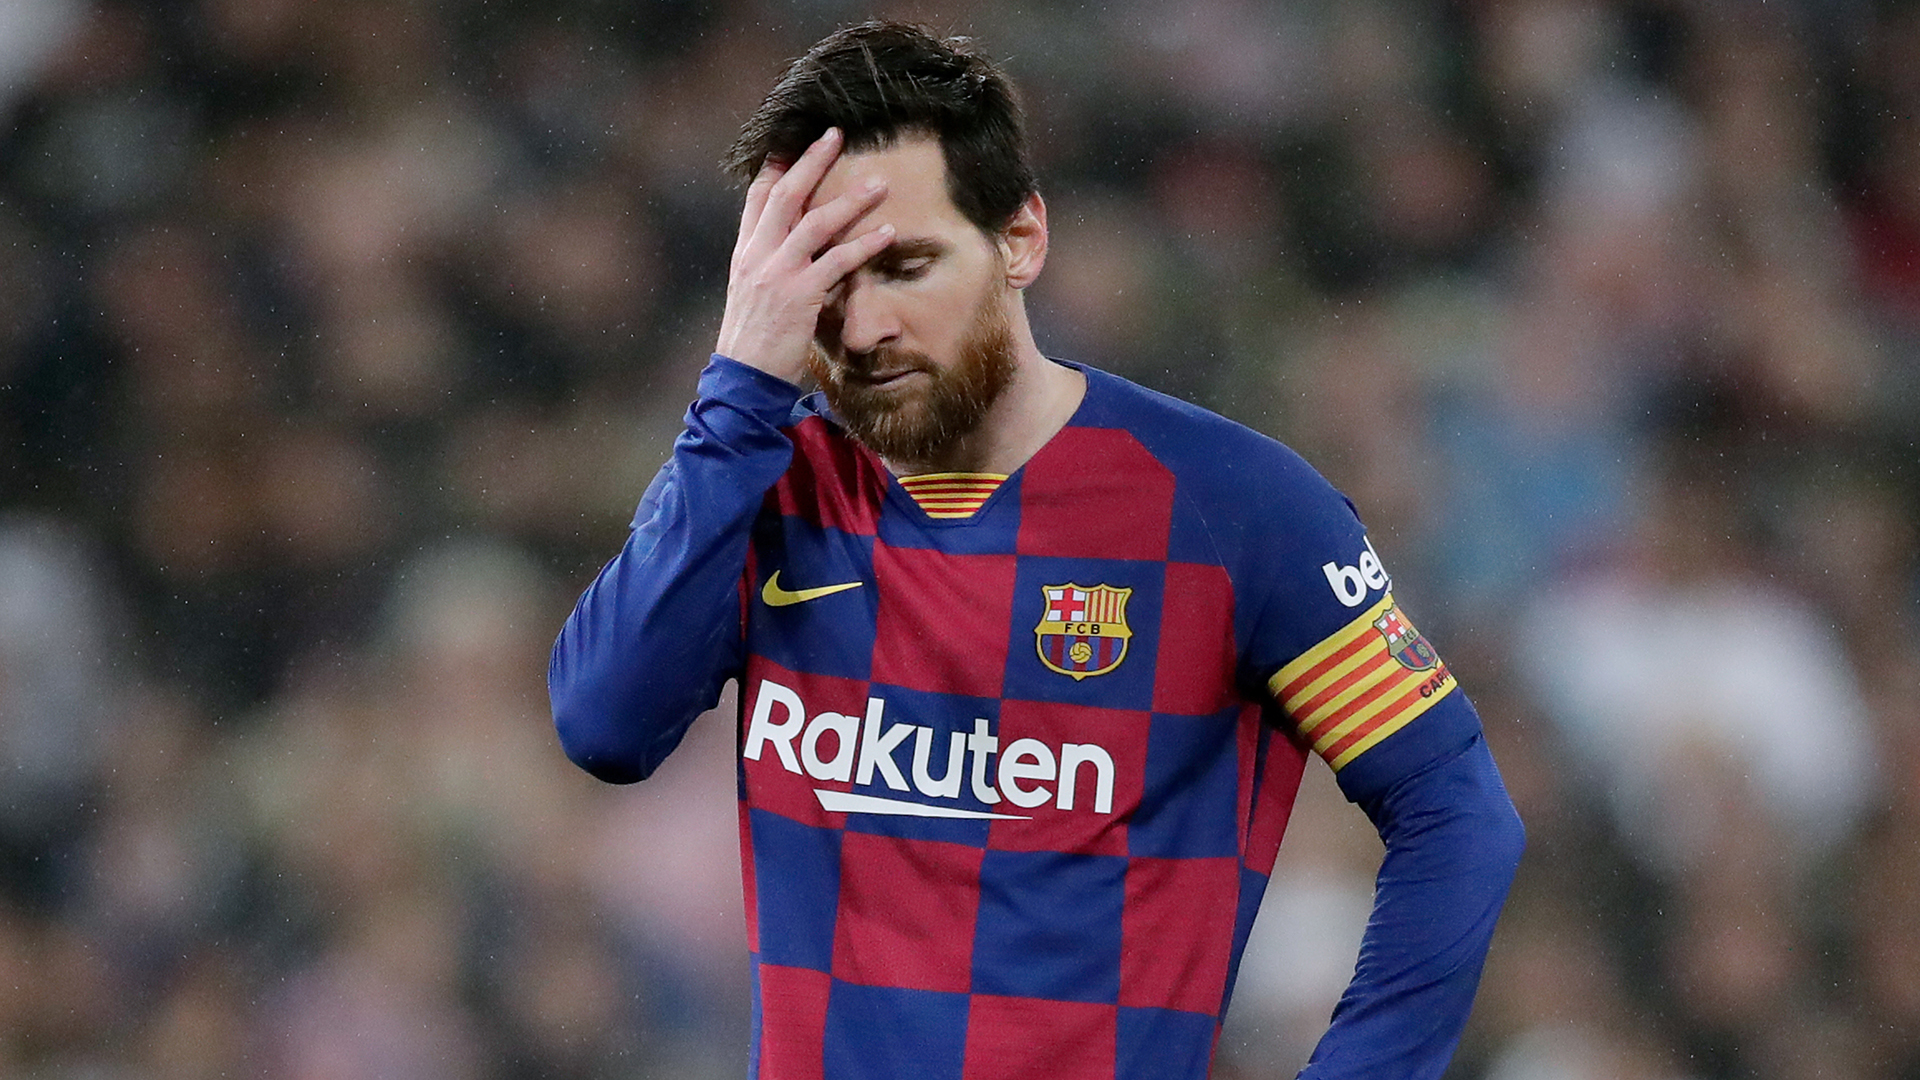 Lionel Messi's contract explained: Could he leave to Man City, Man Utd or anywhere else for free?